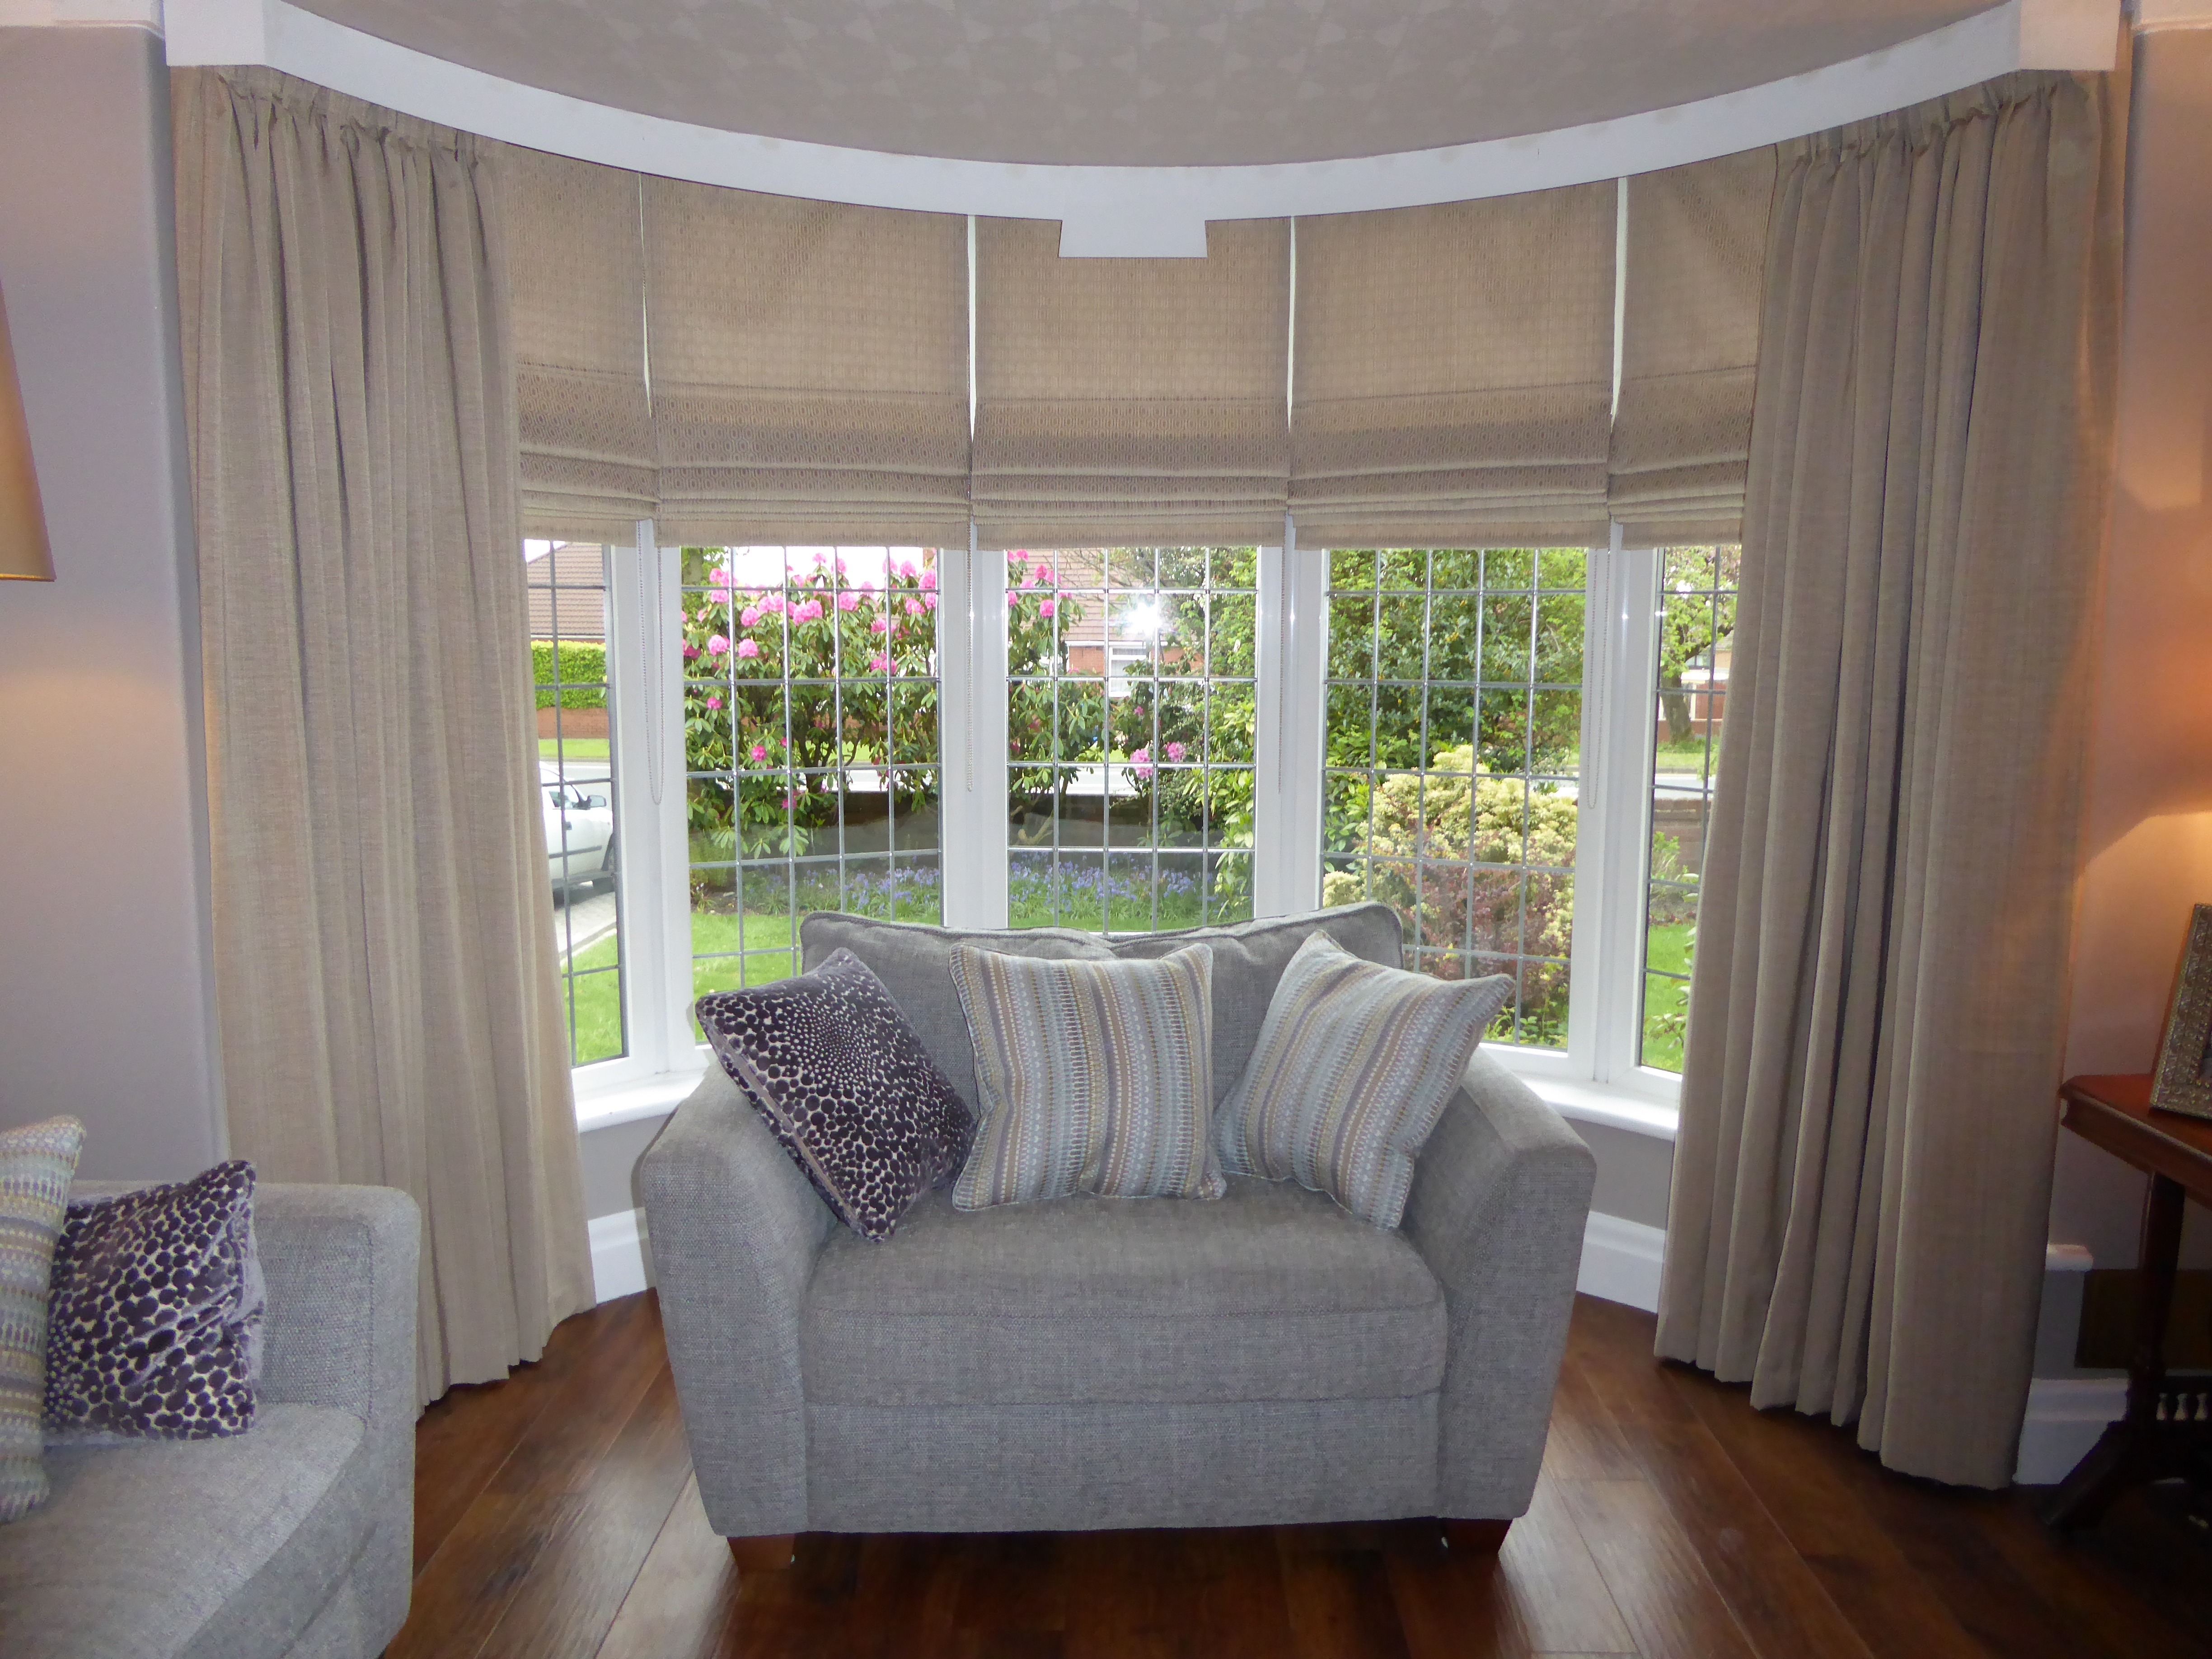 Roman Blinds Bury Roman Blinds Bury Blinds And Curtains Inside Matching Curtains And Roman Blinds (Image 11 of 15)